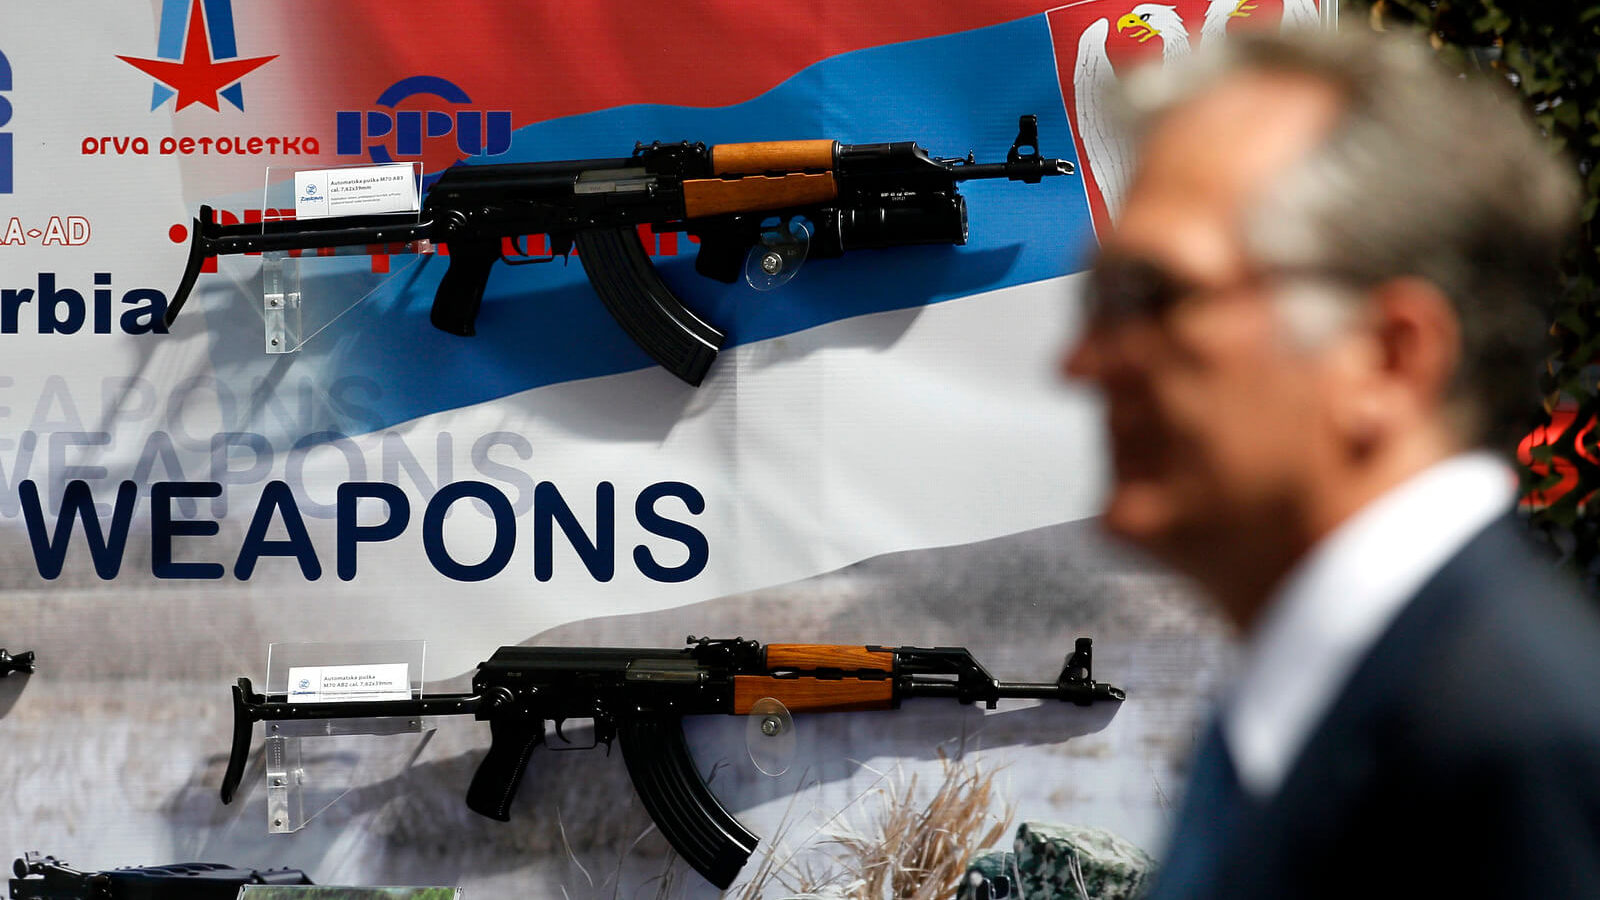 In this June 28, 2011 file photo, a visitor looks at assault rifles made by the Serbian company Zastava Arms, during a defense fair, in Belgrade, Serbia. Darko Vojinovic | AP